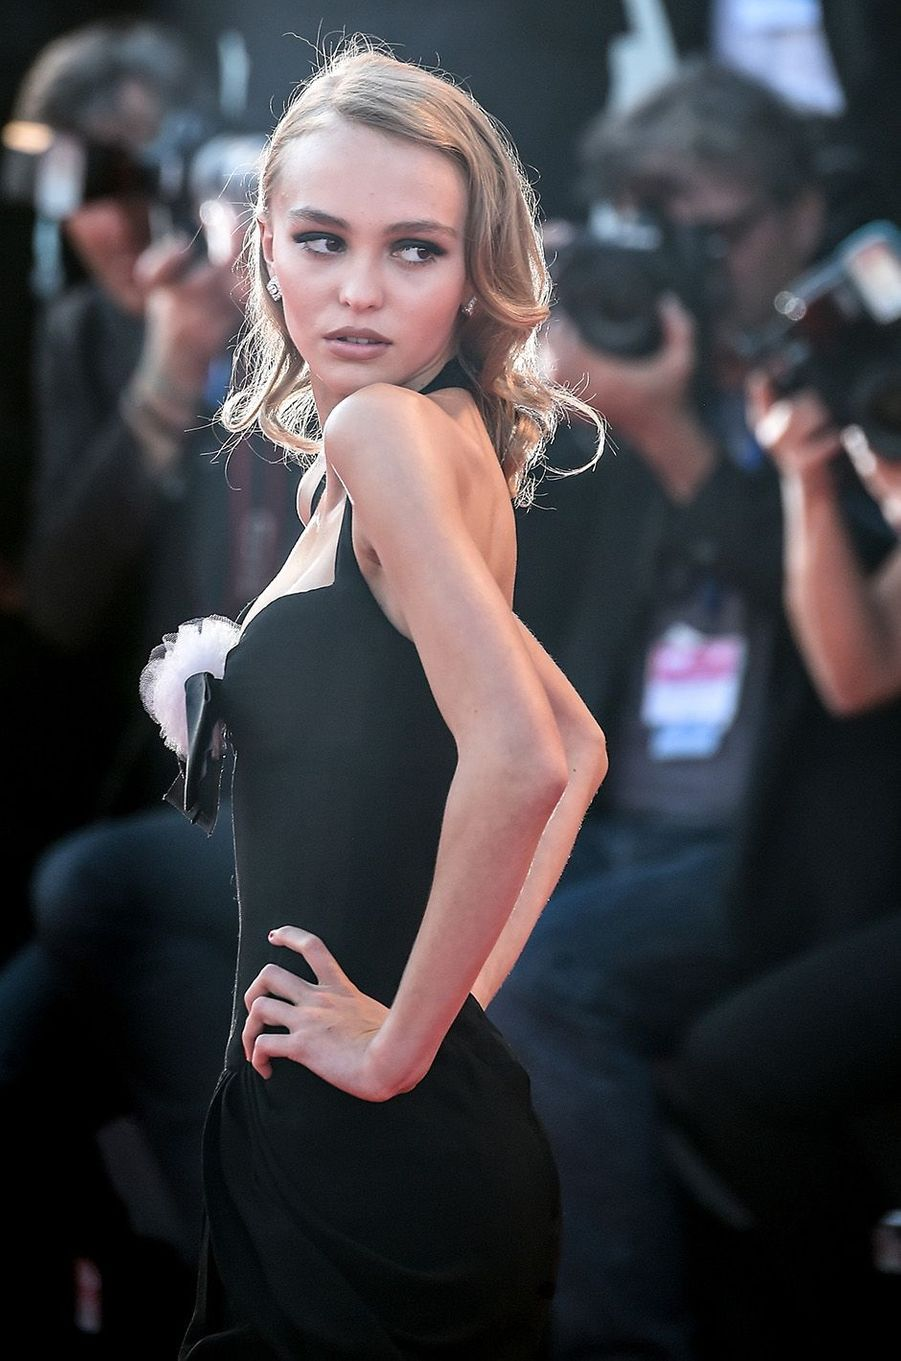 Sexy Match : Lily-Rose Depp, l'enfant rebelle